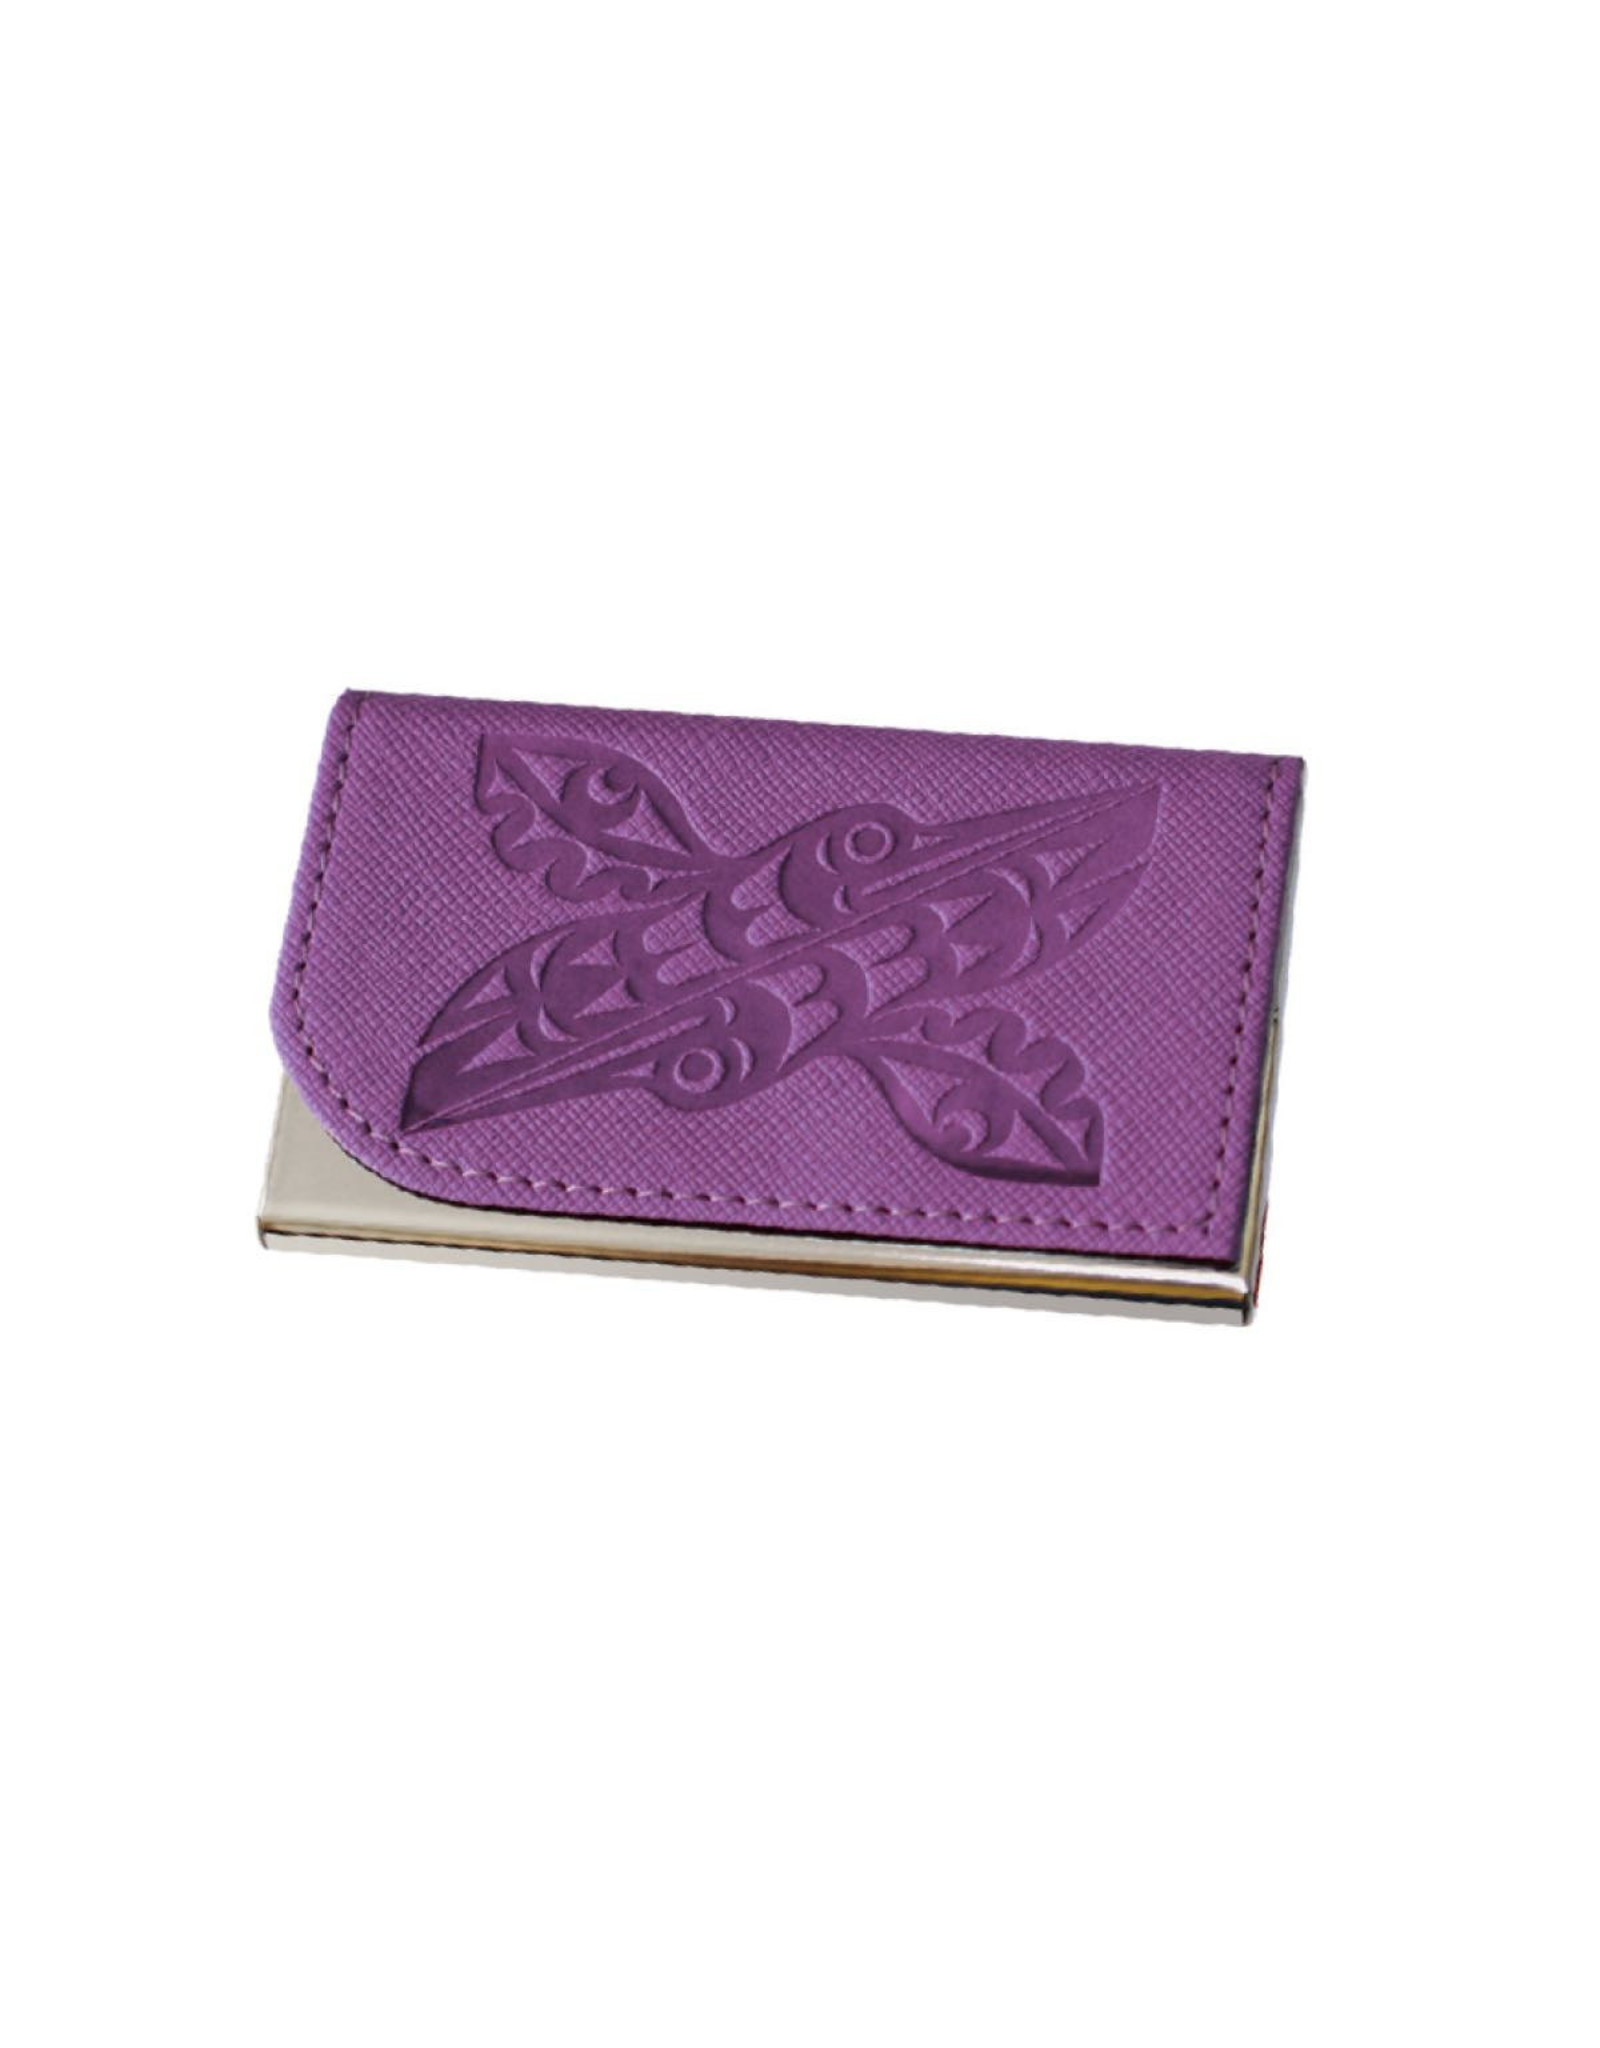 Card Holder - Hummingbirds by Maynard Johnny Jr. (CH15)